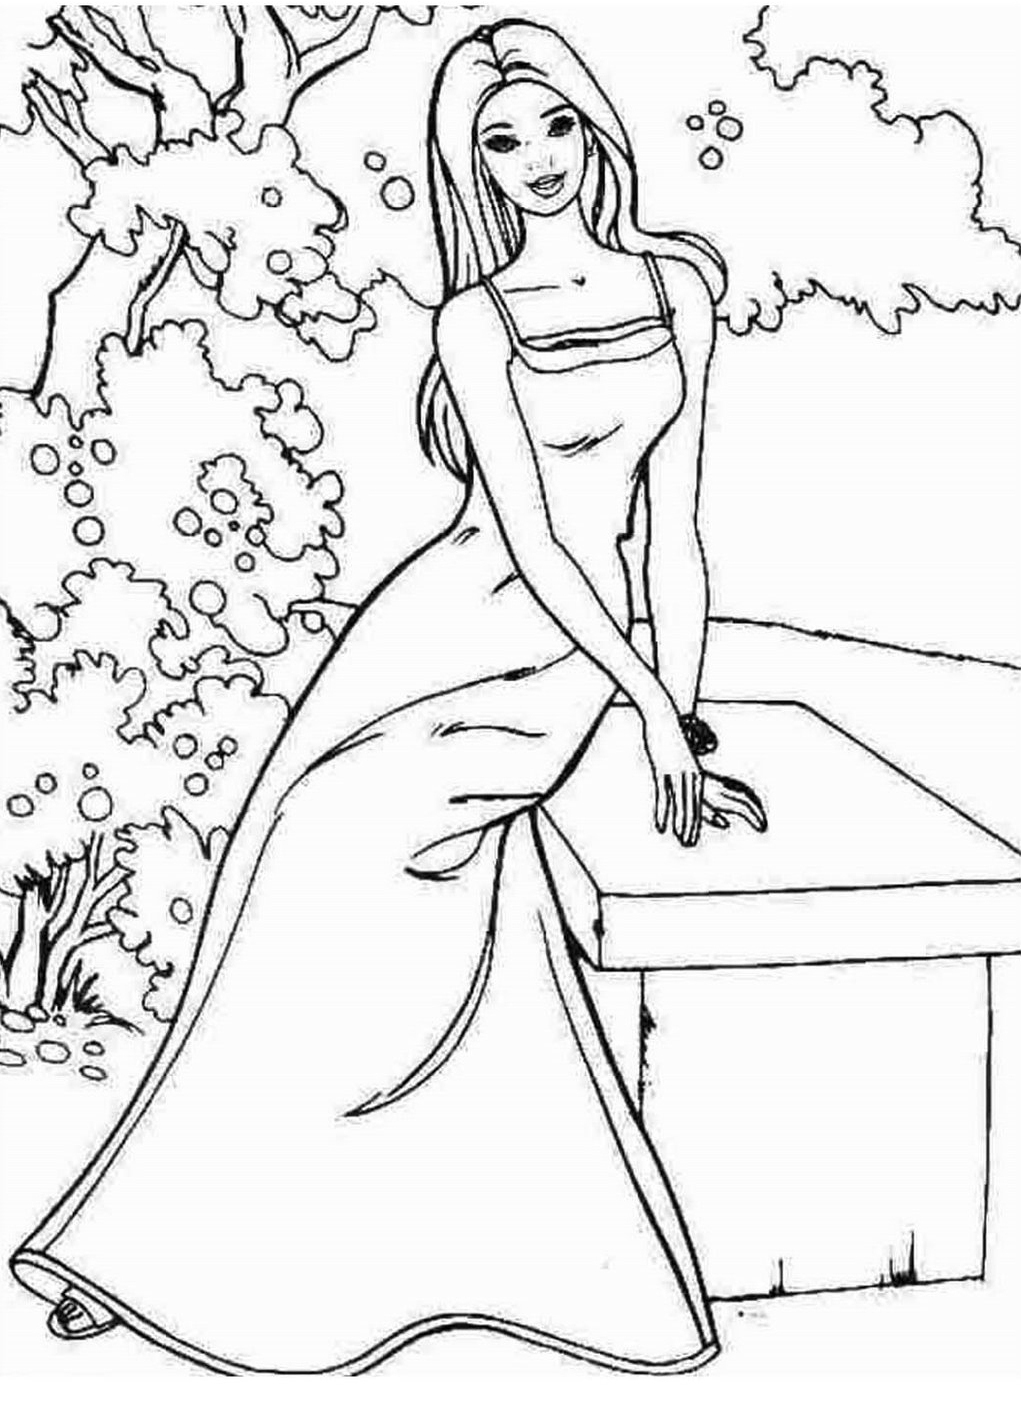 coloring book outline images fun coloring pages wedding coloring pages wedding love dove book outline coloring images